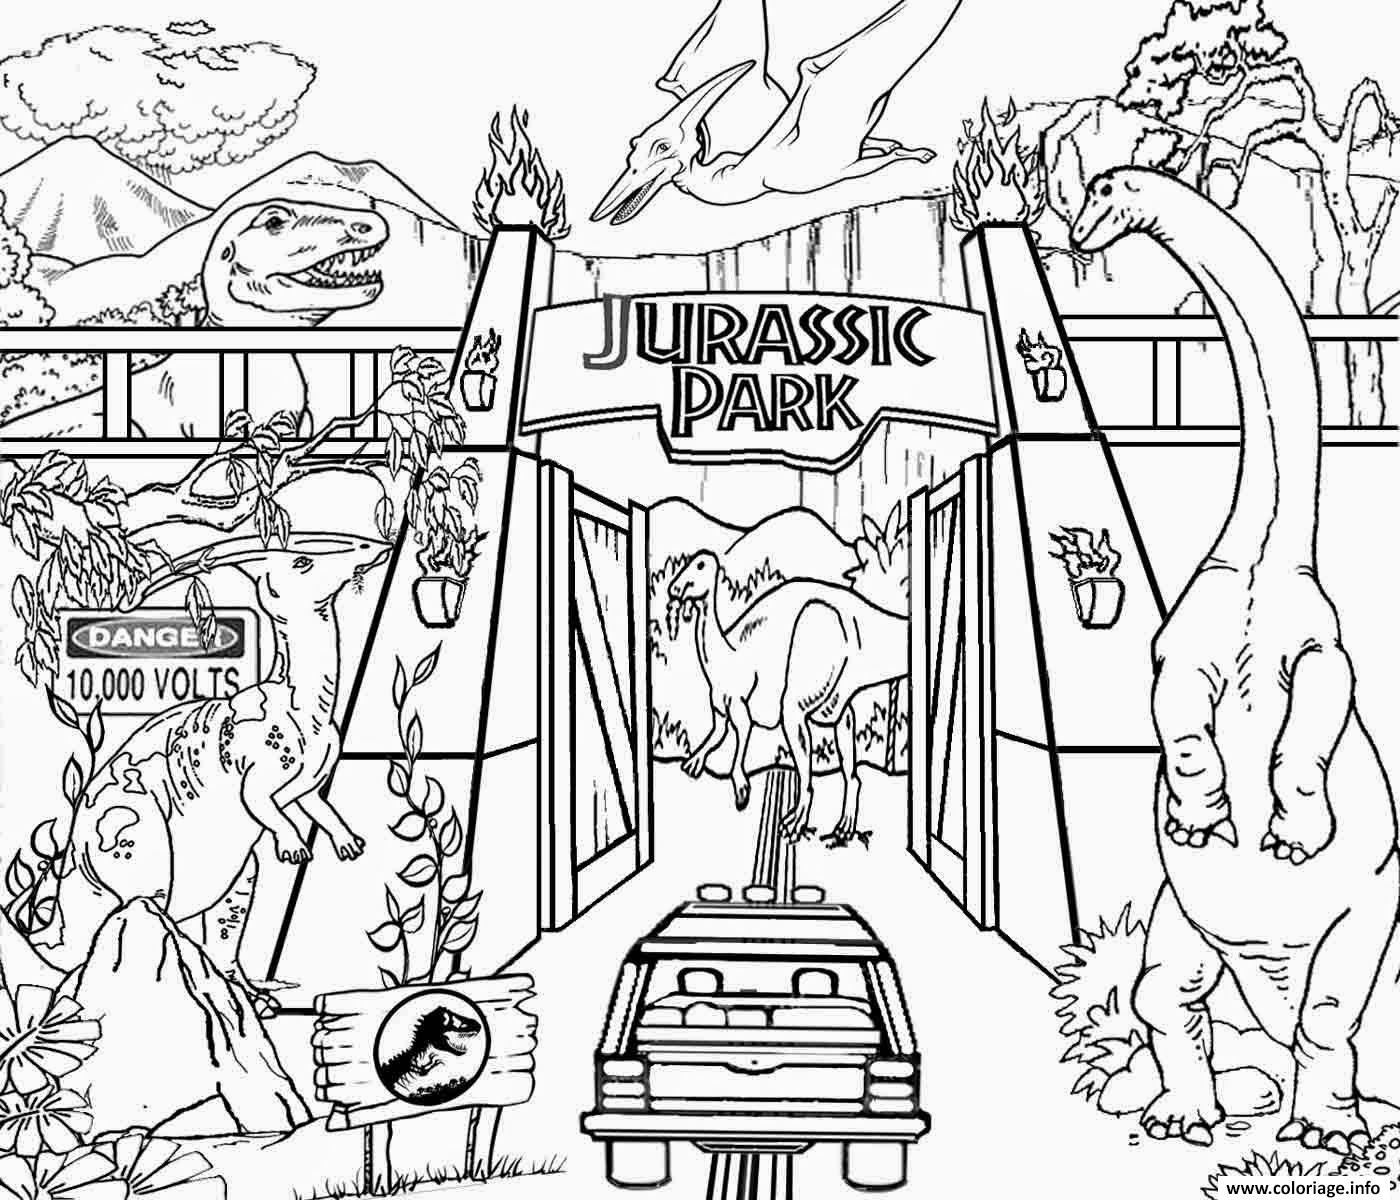 Bilder Zum Ausmalen New York Collection Dinosaur Coloring Pages Andonous Rex Pictures